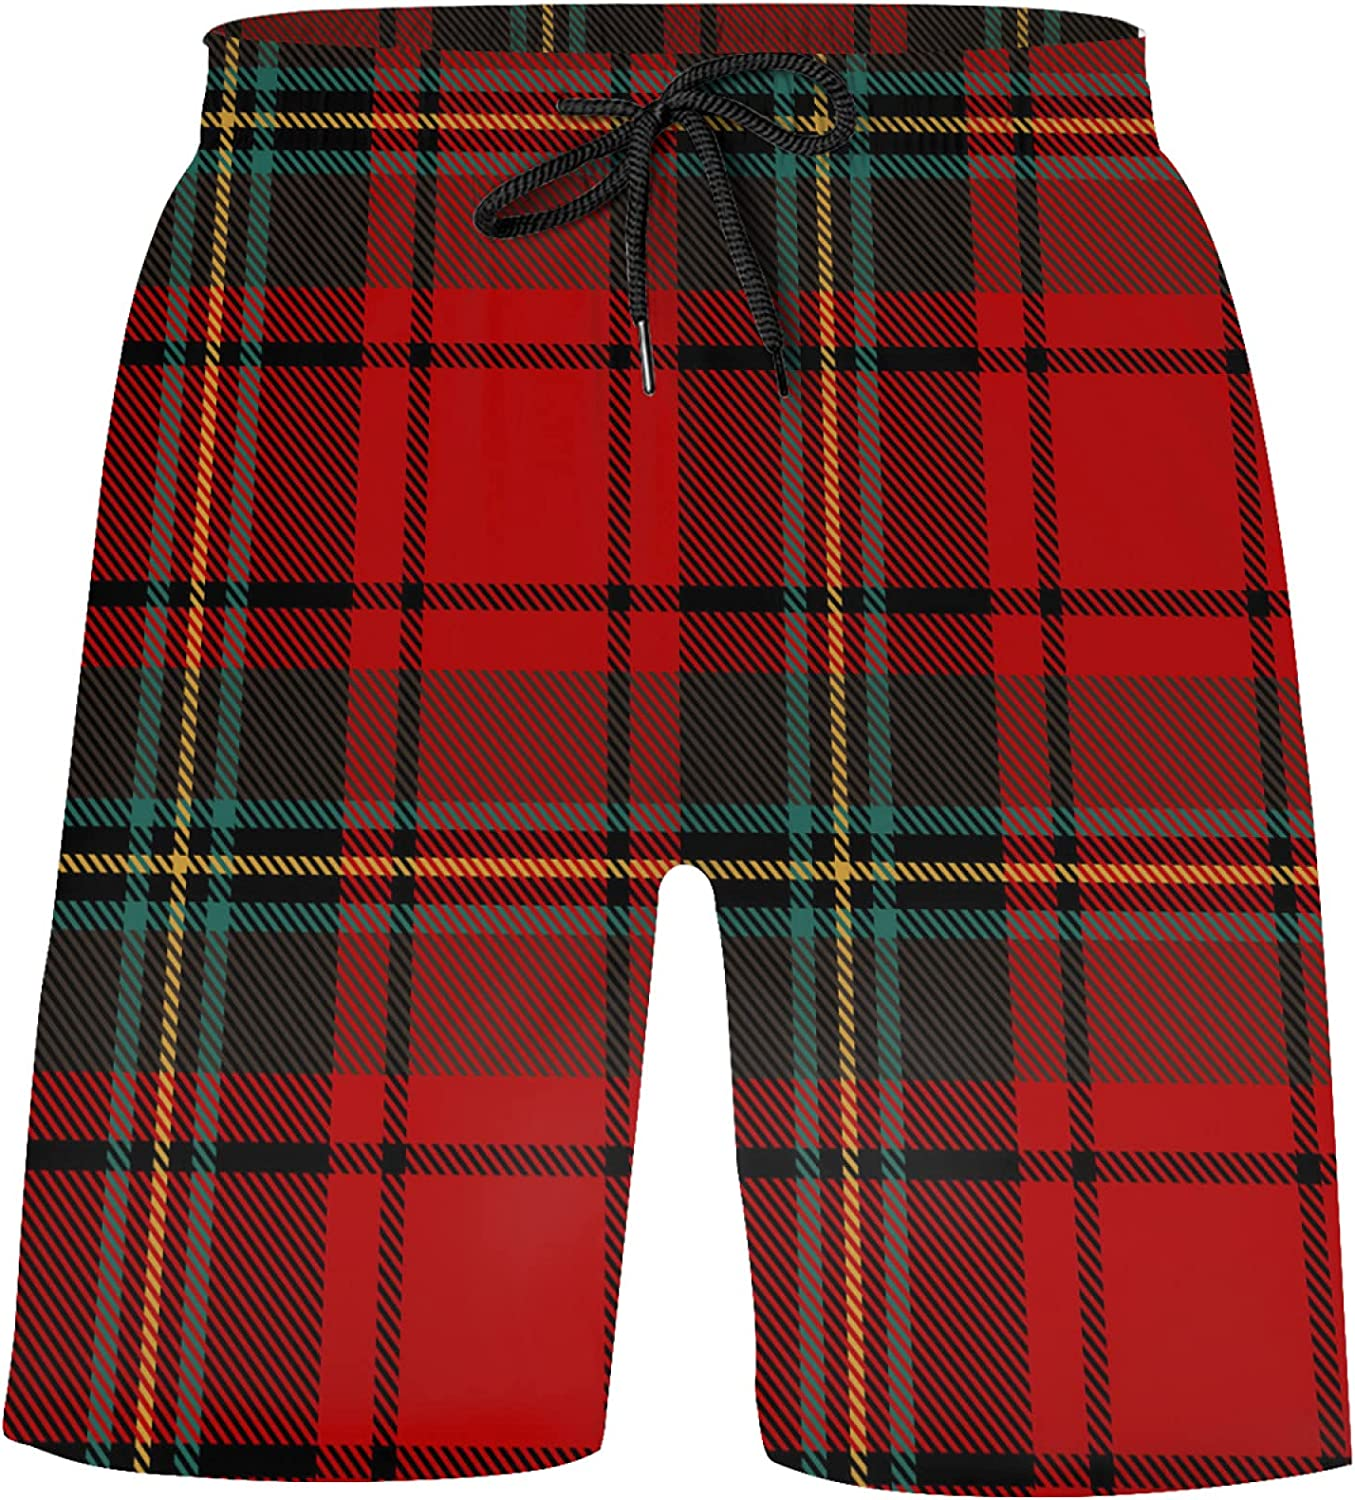 N A Black, Green, Red and White Tartan Scottish Check Boys Bathing Suits Athletic Board S